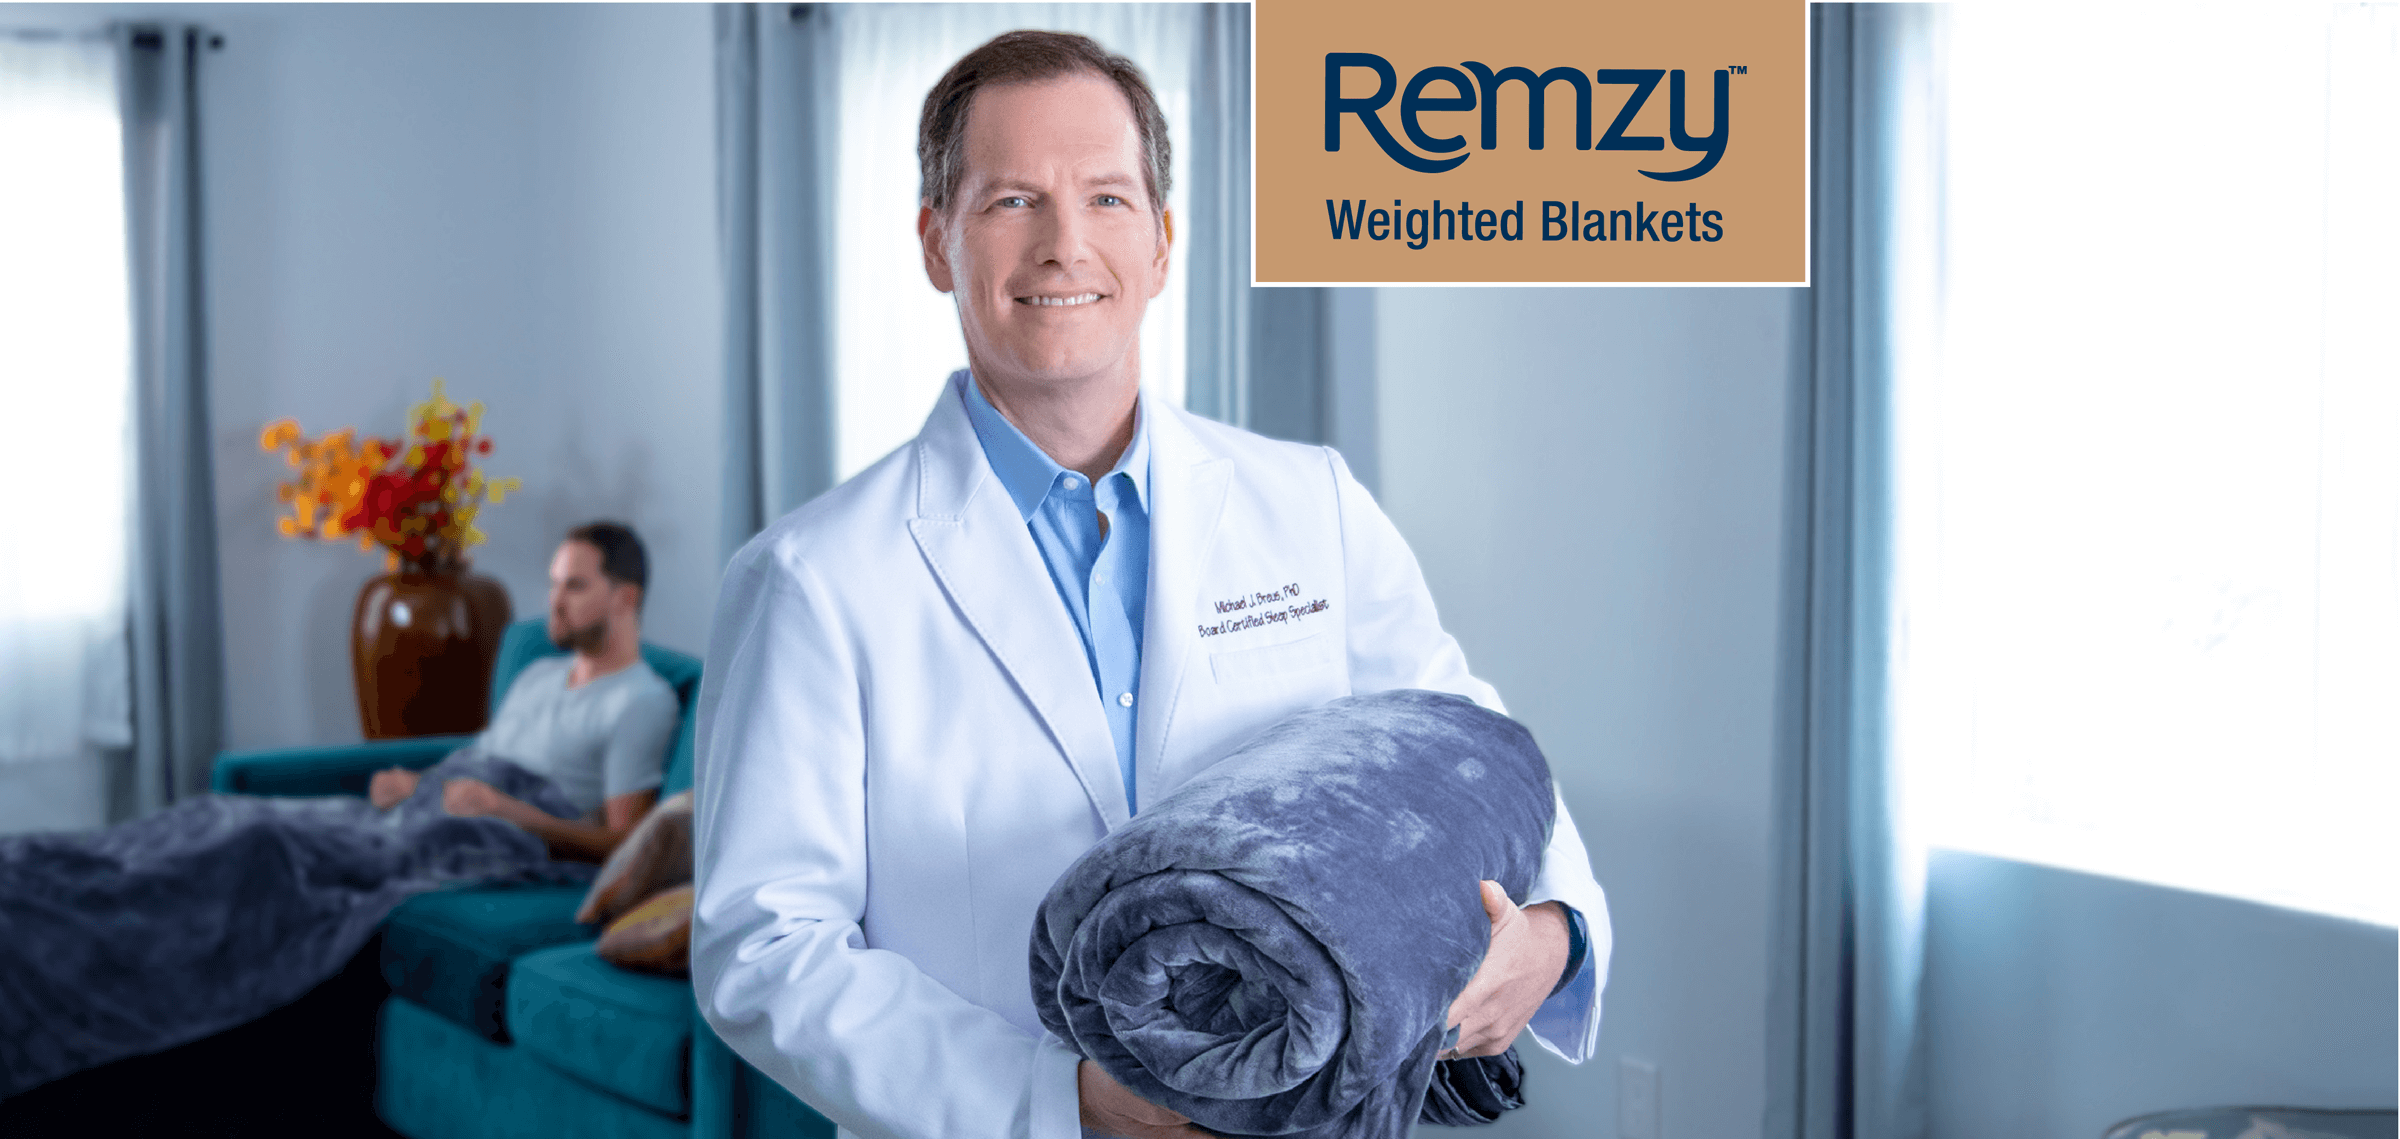 Remzy Weighted Blankets